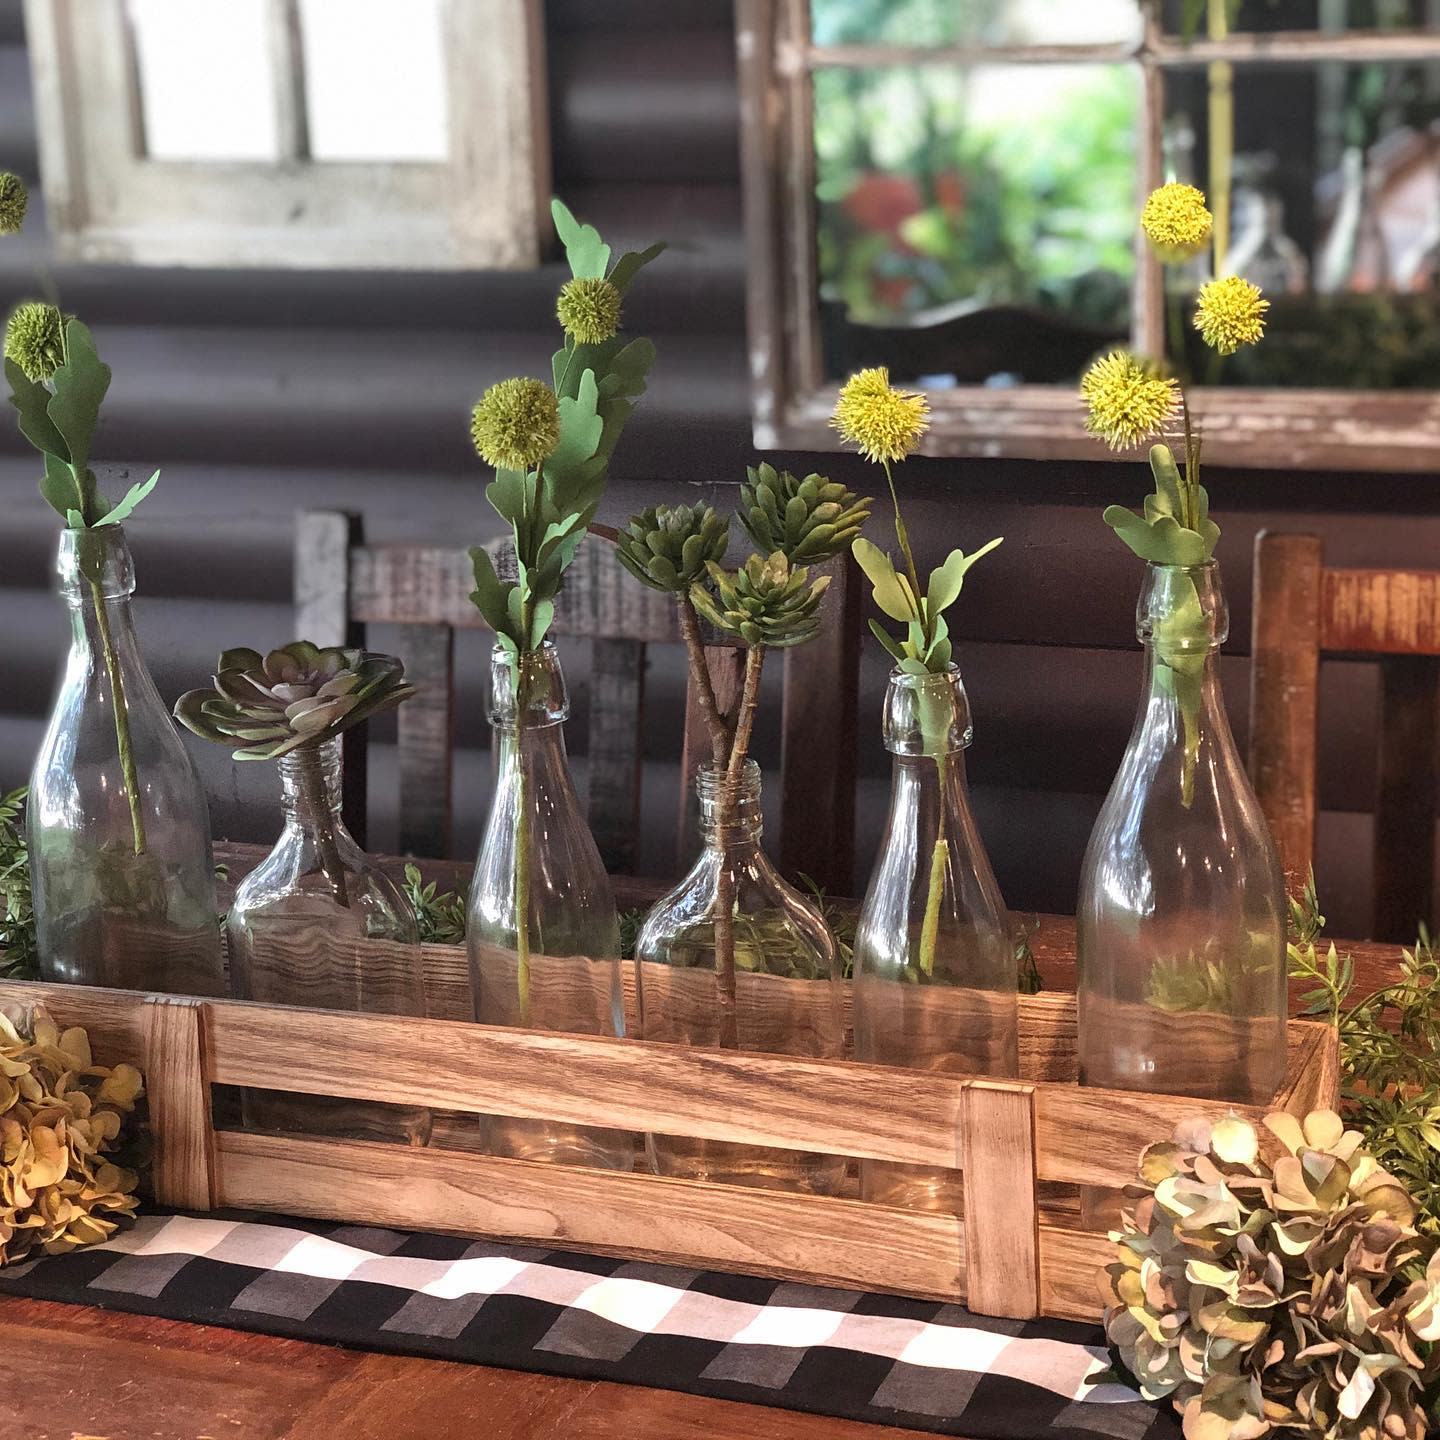 Rustic Dining Table Centerpiece Ideas -twigshomeandlighting